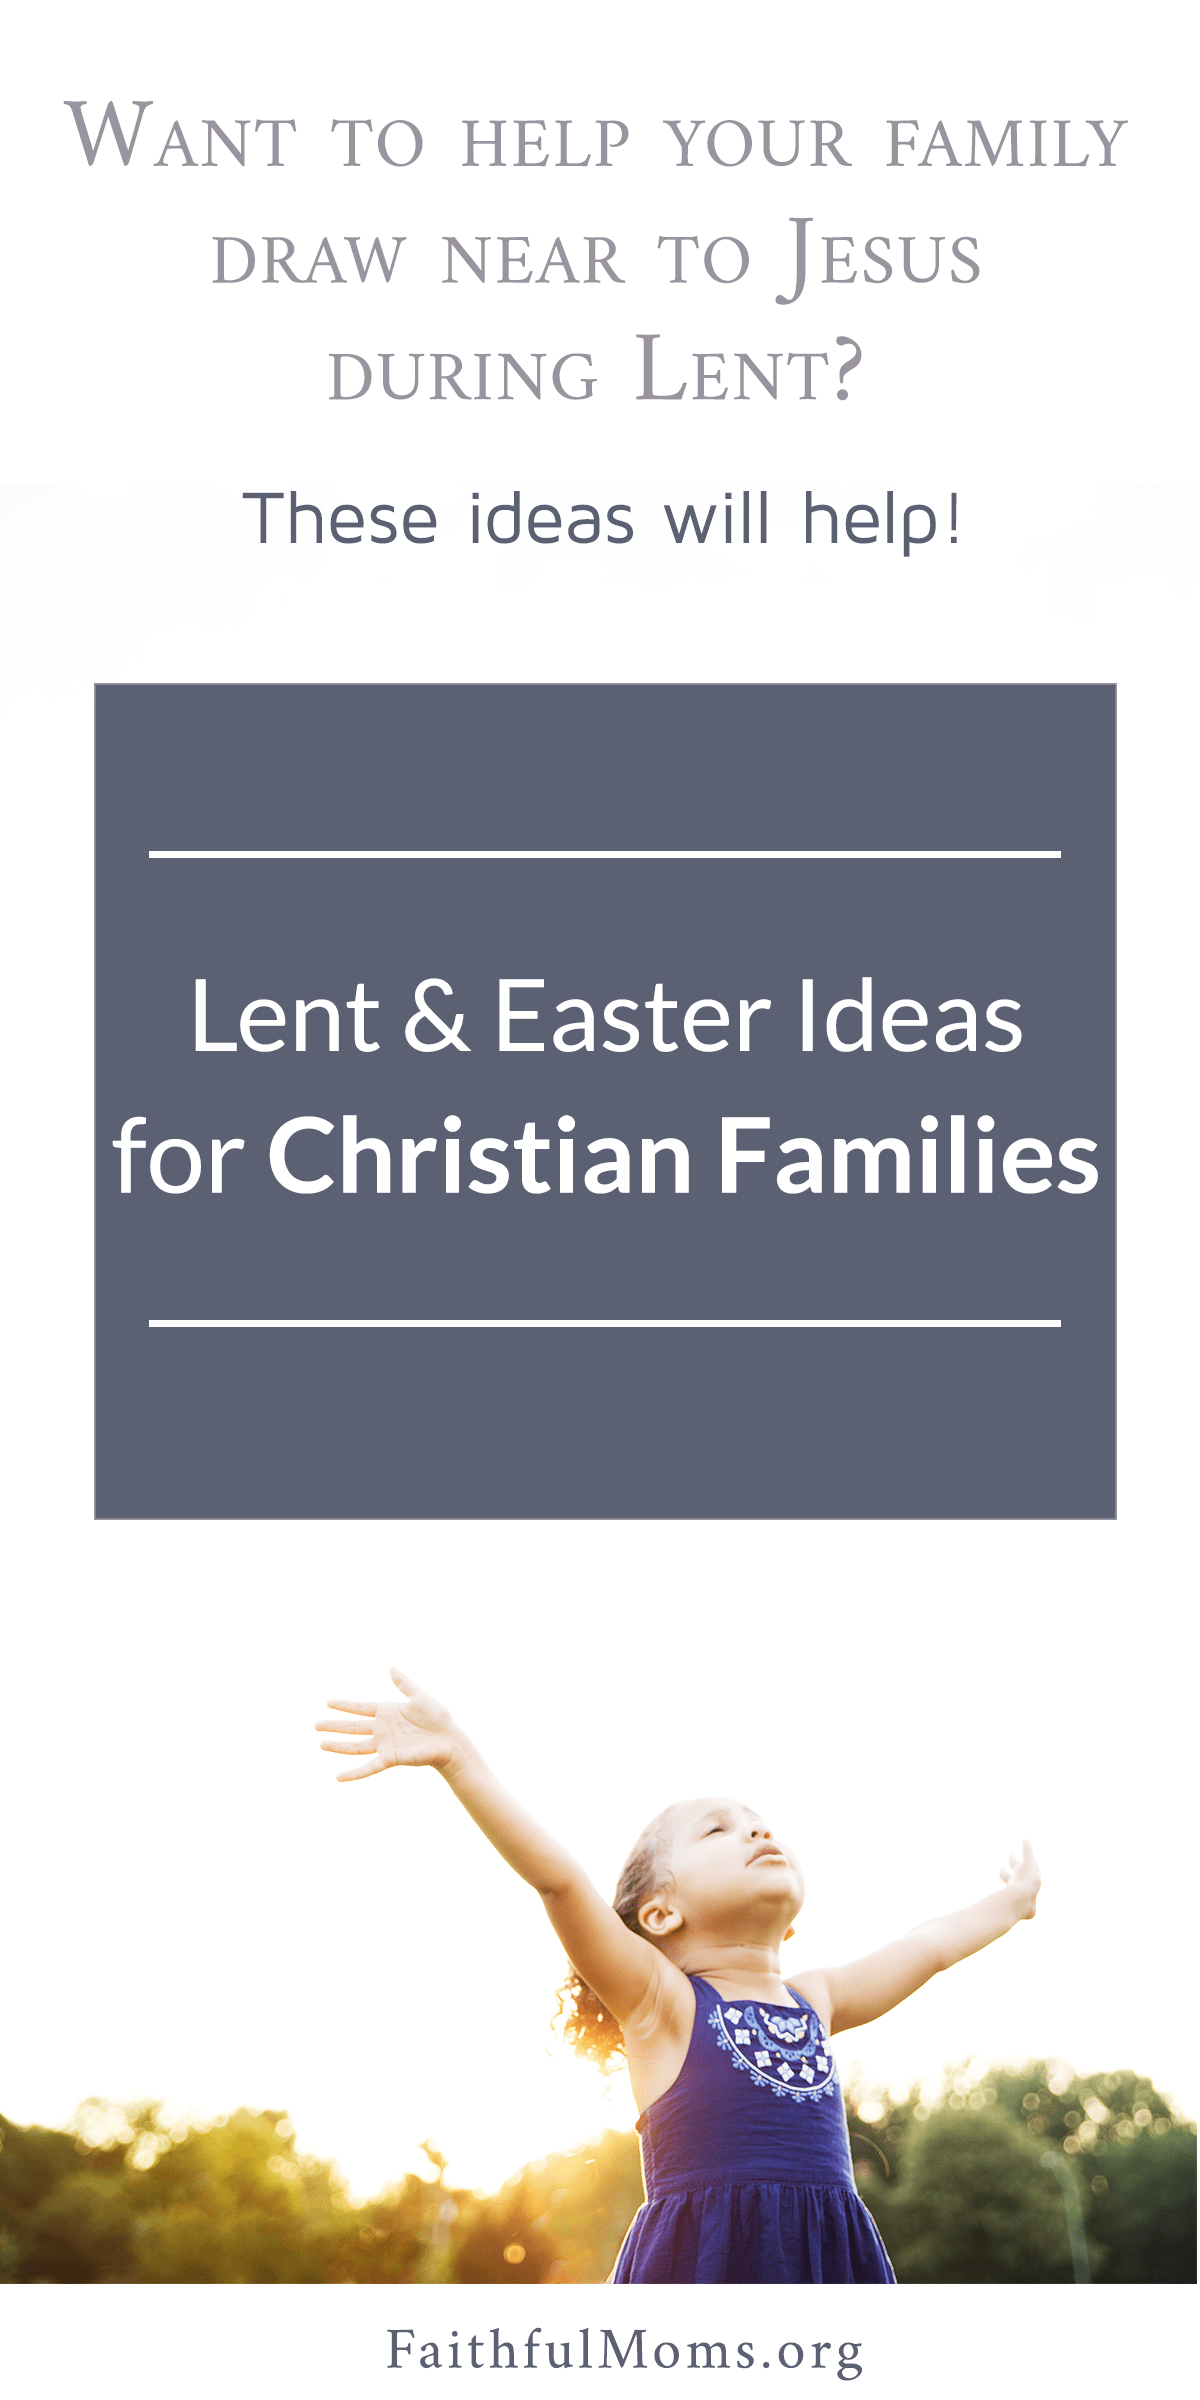 We're doing #1 this year!! // GREAT Lent Ideas for Christian families via @FaithfulMoms